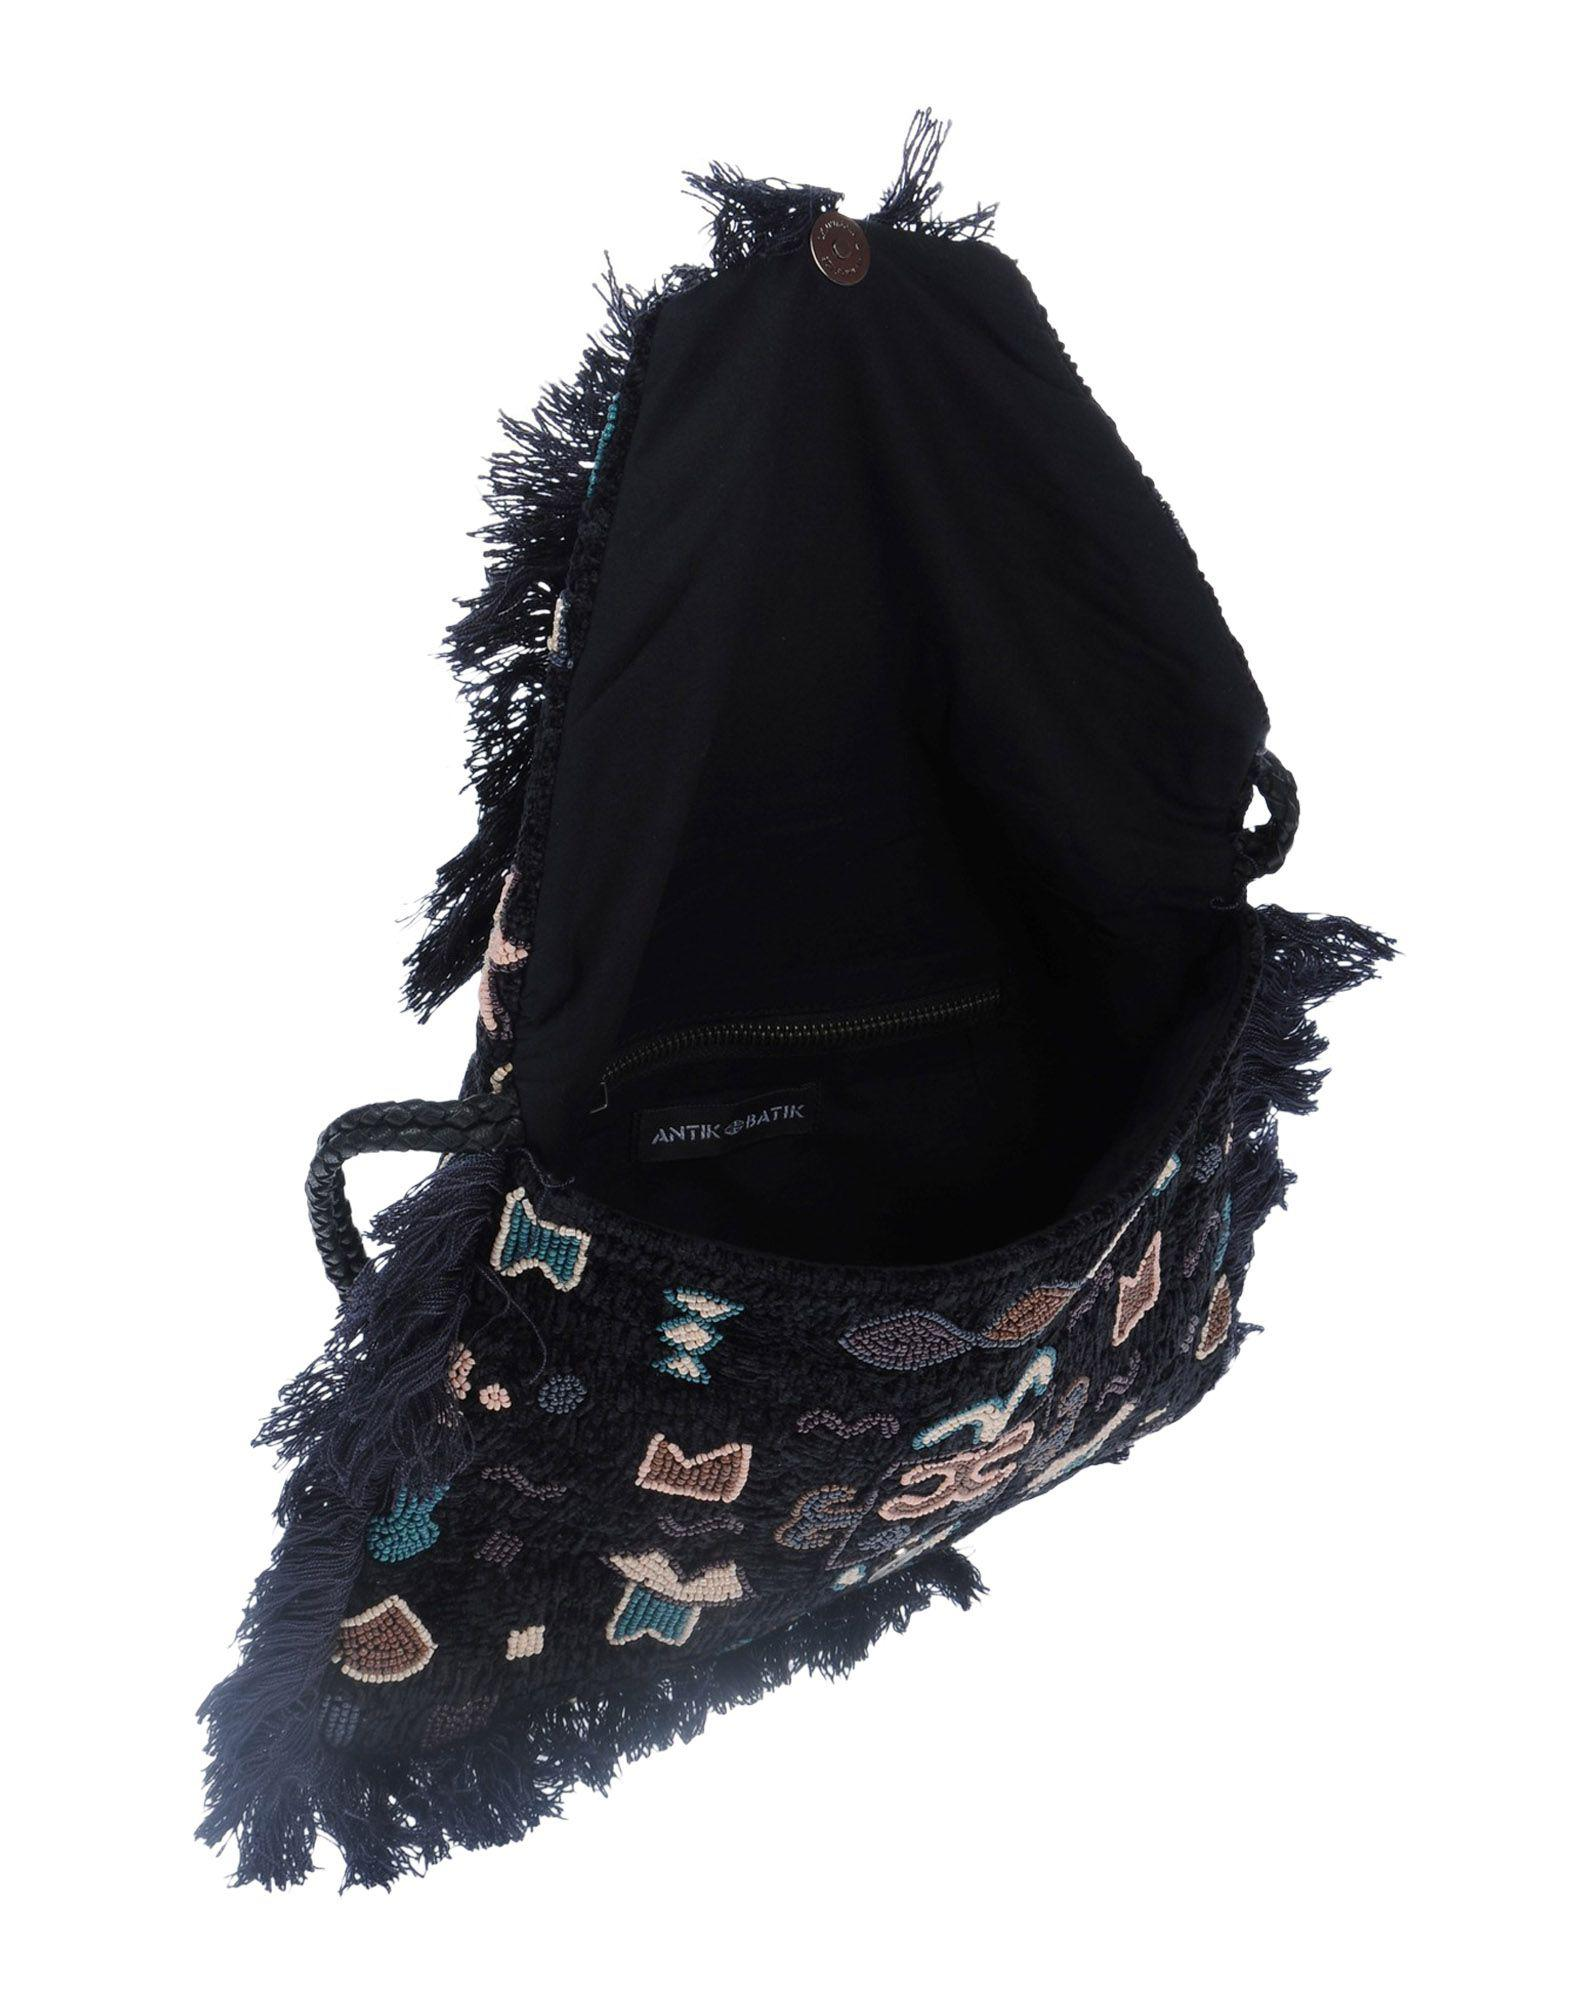 Antik Batik Velvet Cross-body Bag in Black